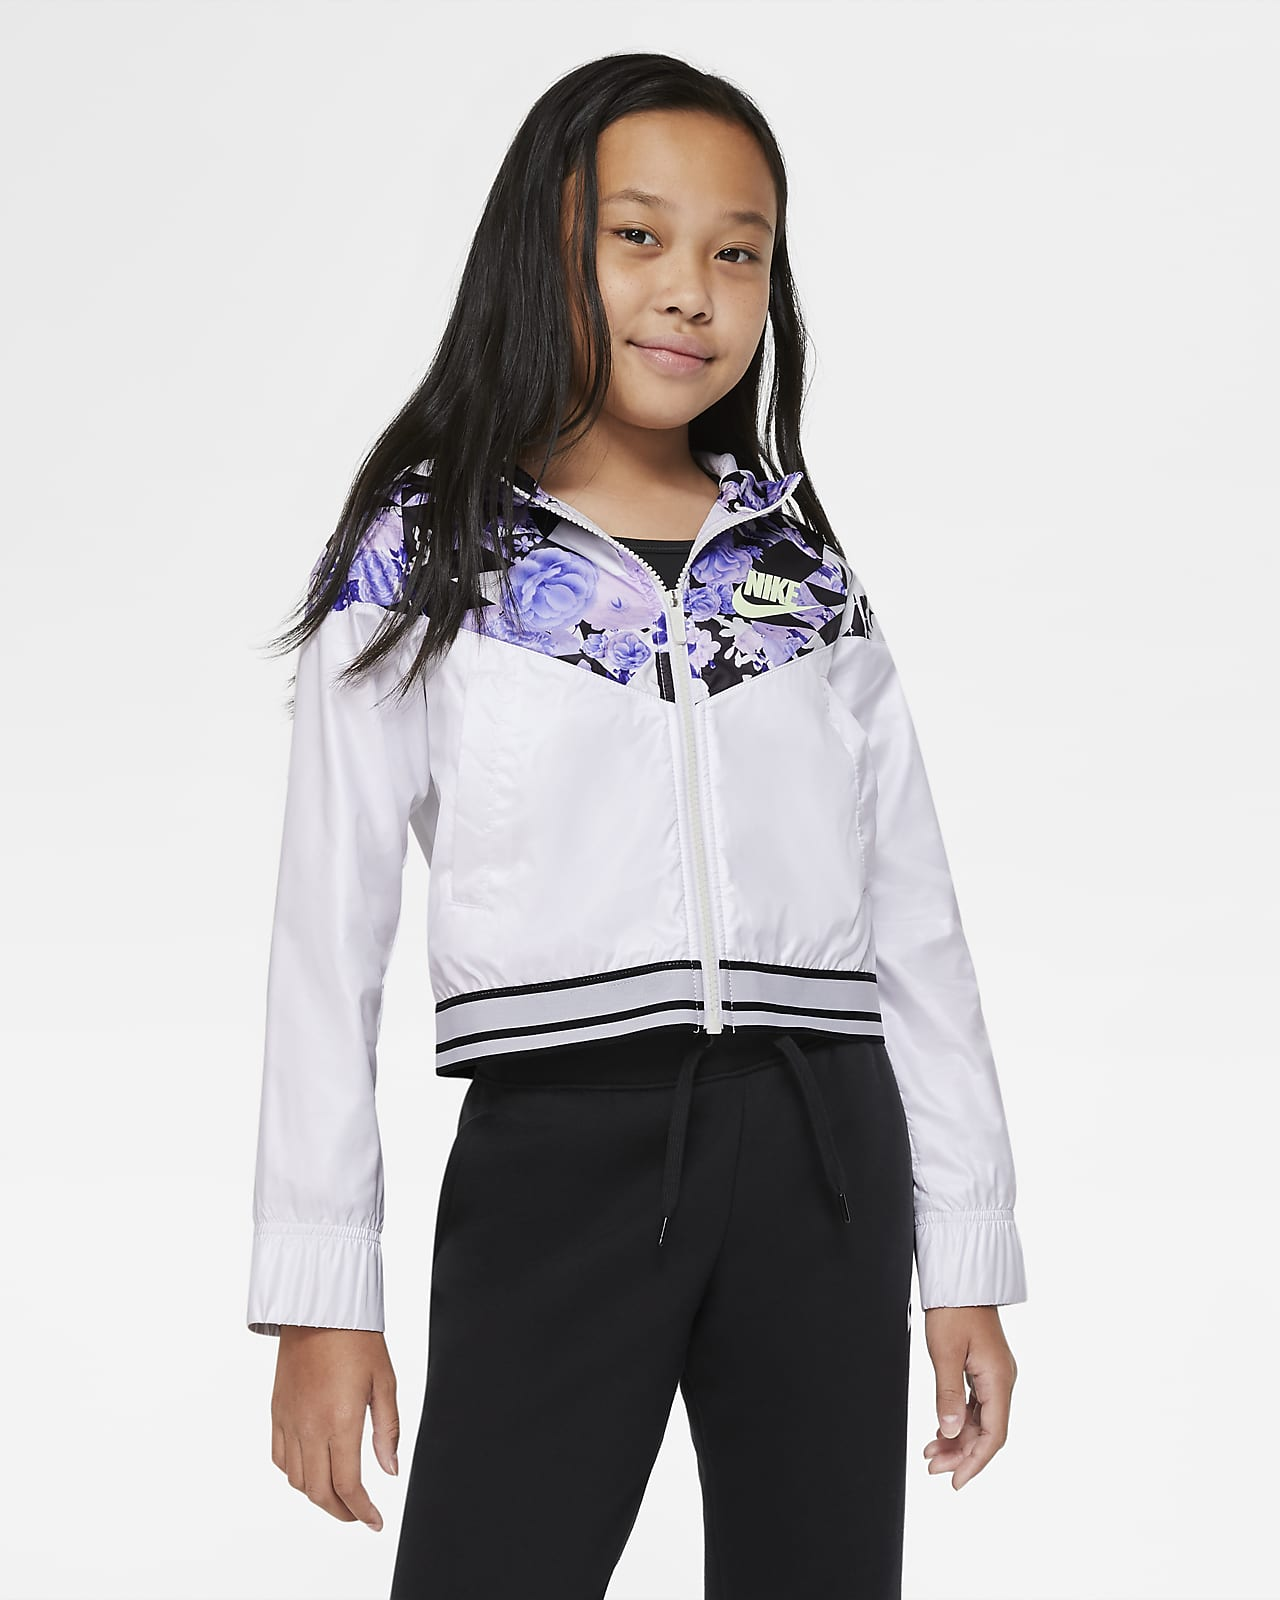 Haiku habla malo  Nike Sportswear Windrunner Older Kids' (Girls') Graphic Jacket. Nike AU